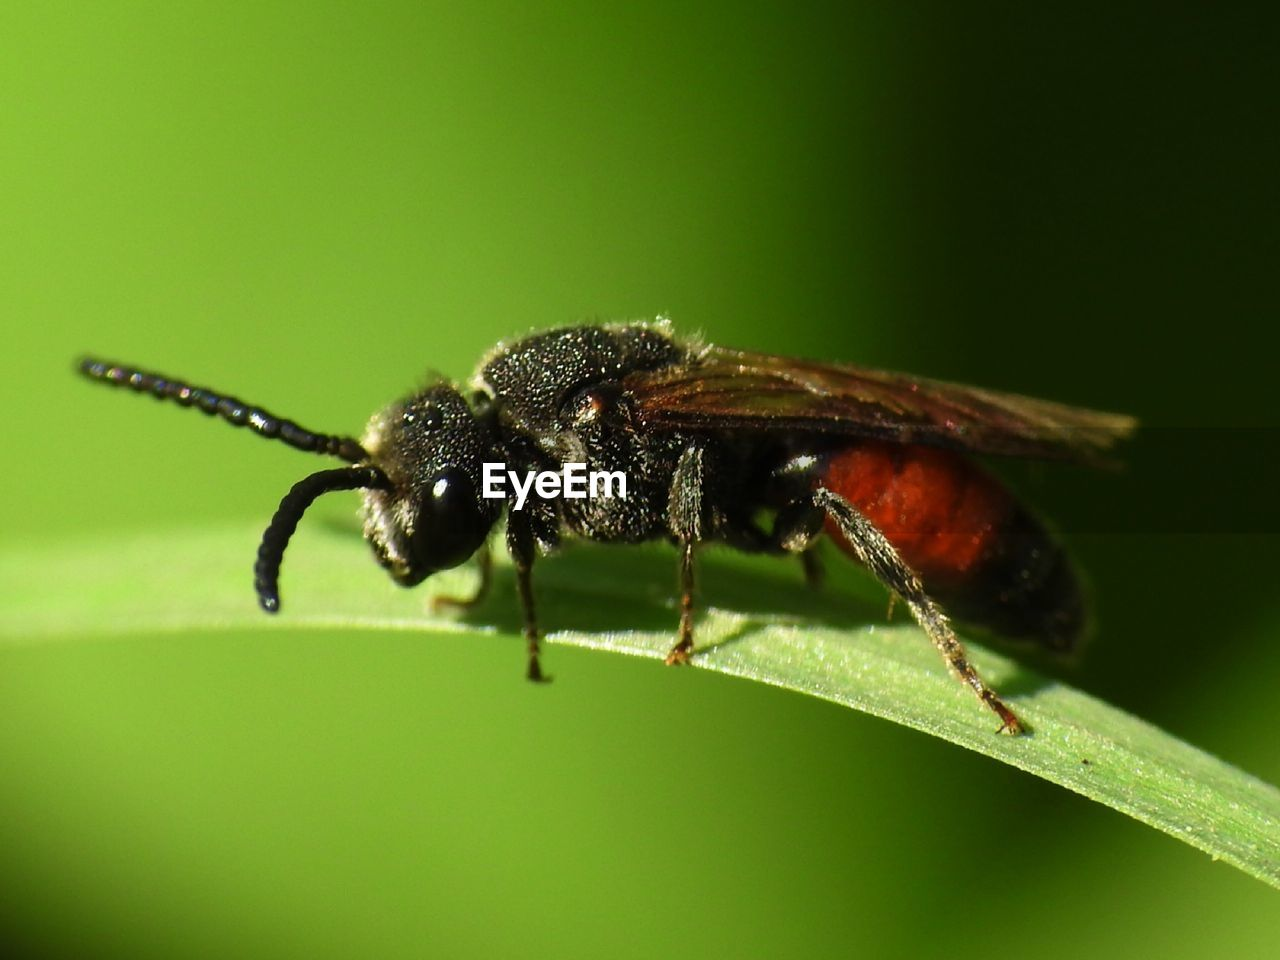 invertebrate, insect, animal, animal themes, animal wildlife, one animal, animals in the wild, close-up, plant part, leaf, green color, nature, no people, animal body part, zoology, focus on foreground, animal wing, day, plant, selective focus, outdoors